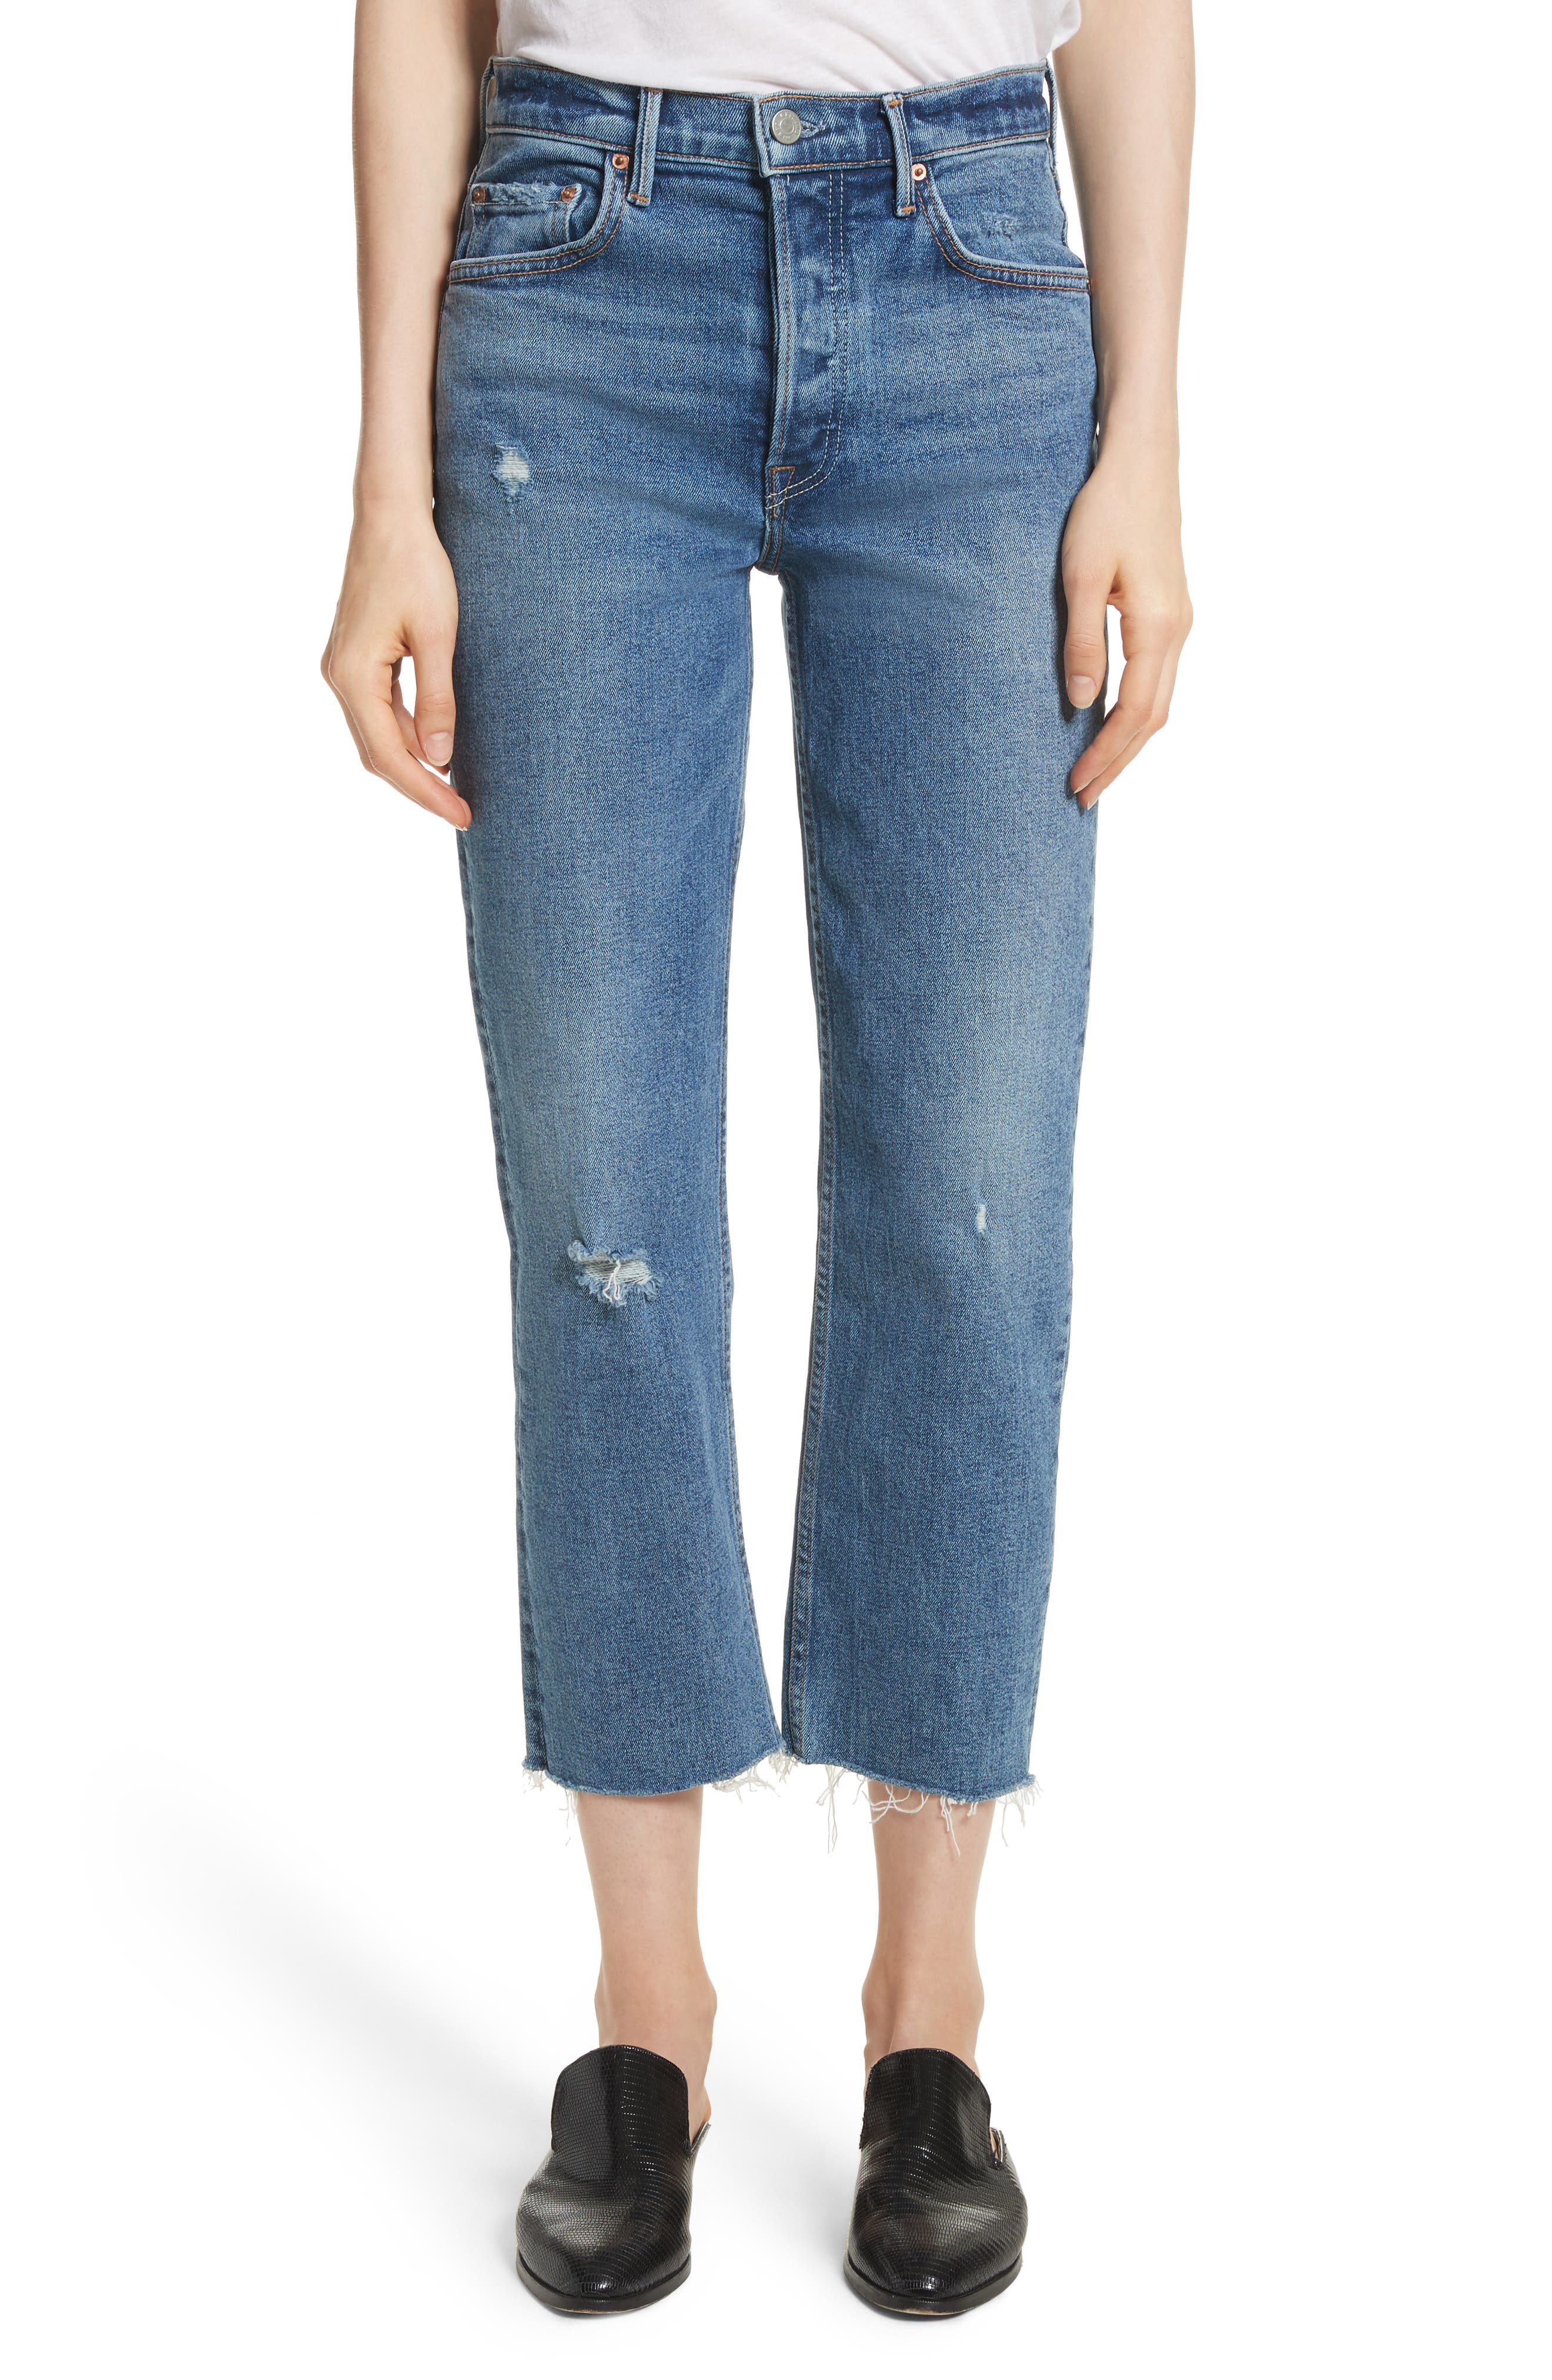 Helena Distressed Rigid High Waist Straight Jeans,                             Main thumbnail 1, color,                             SIXPENCE